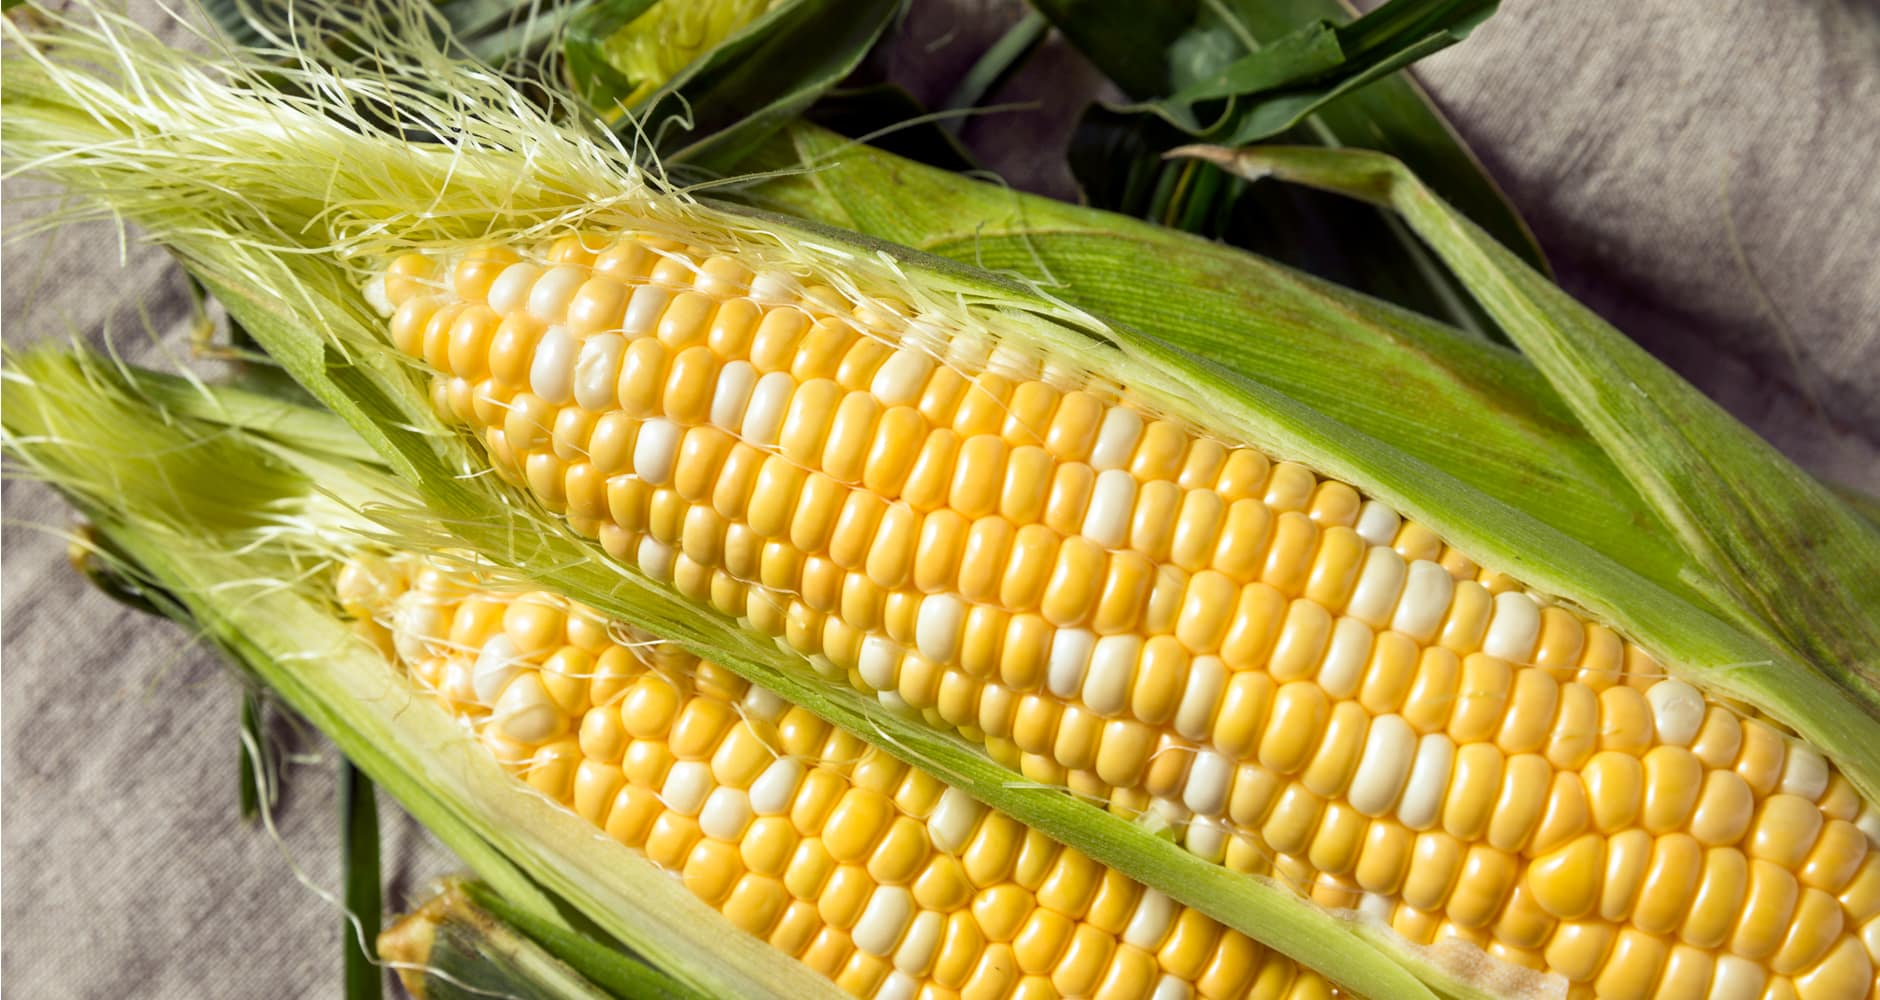 two ears of corn in their husks on a table